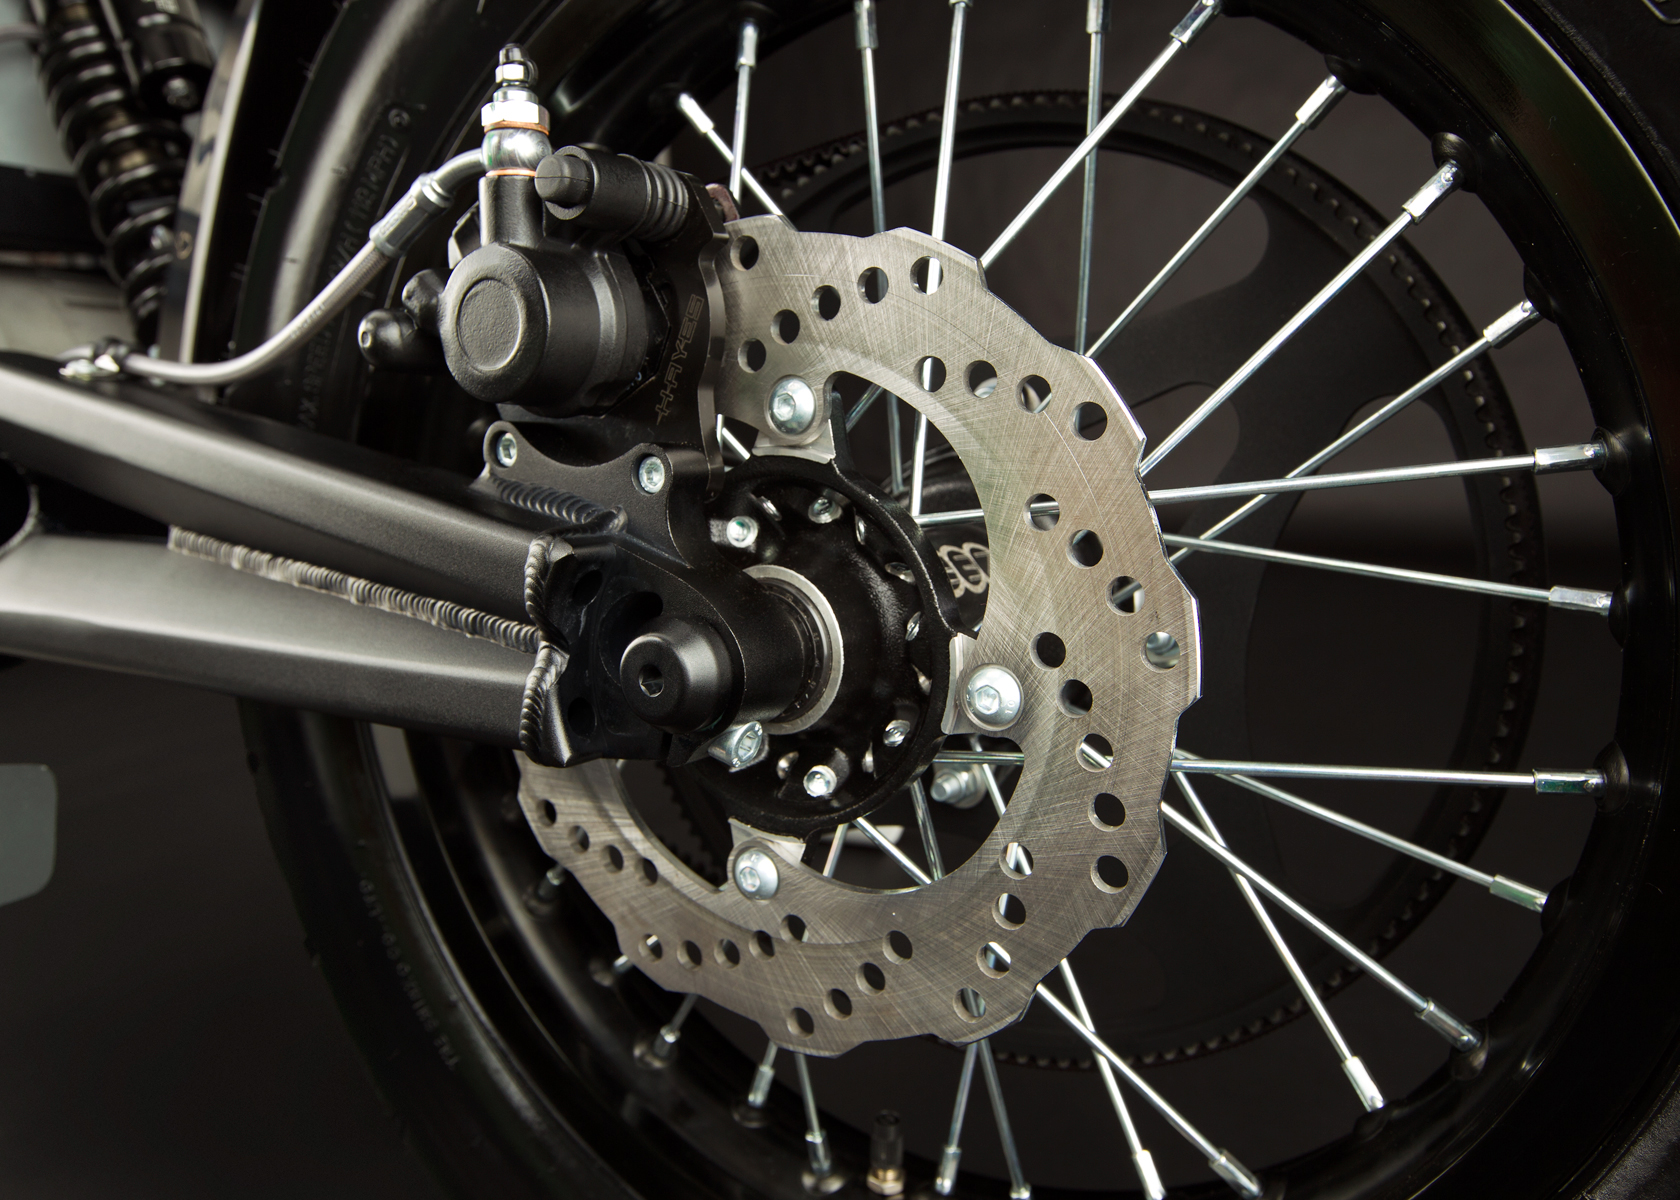 2012 Zero XU Electric Motorcycle: Back Brake